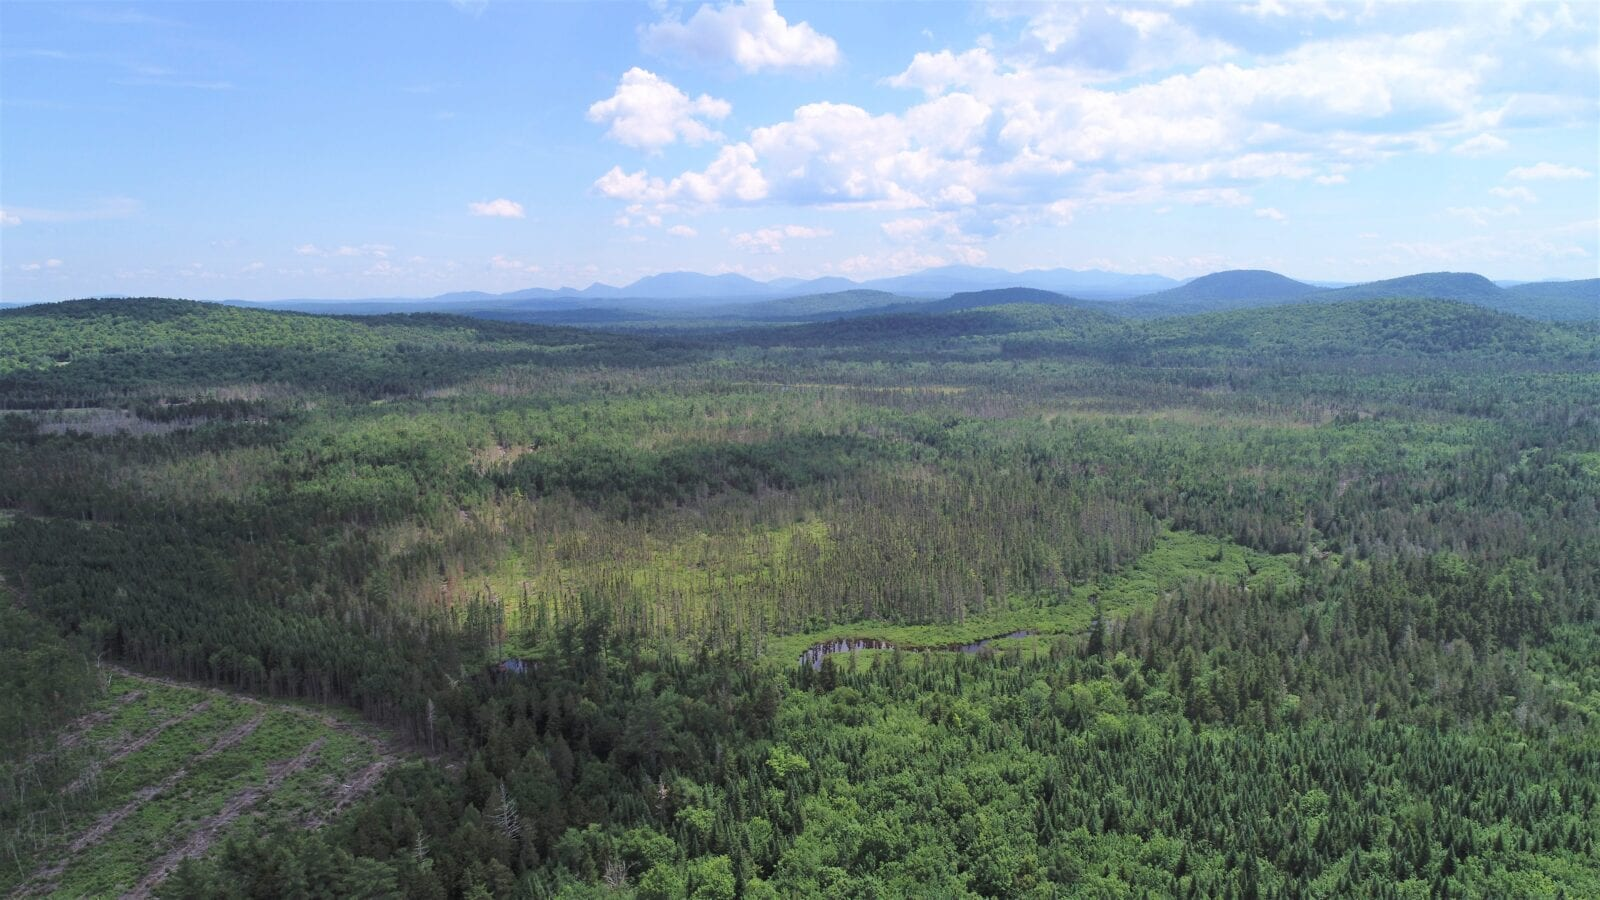 aerial photo of forest with mountains in the distance